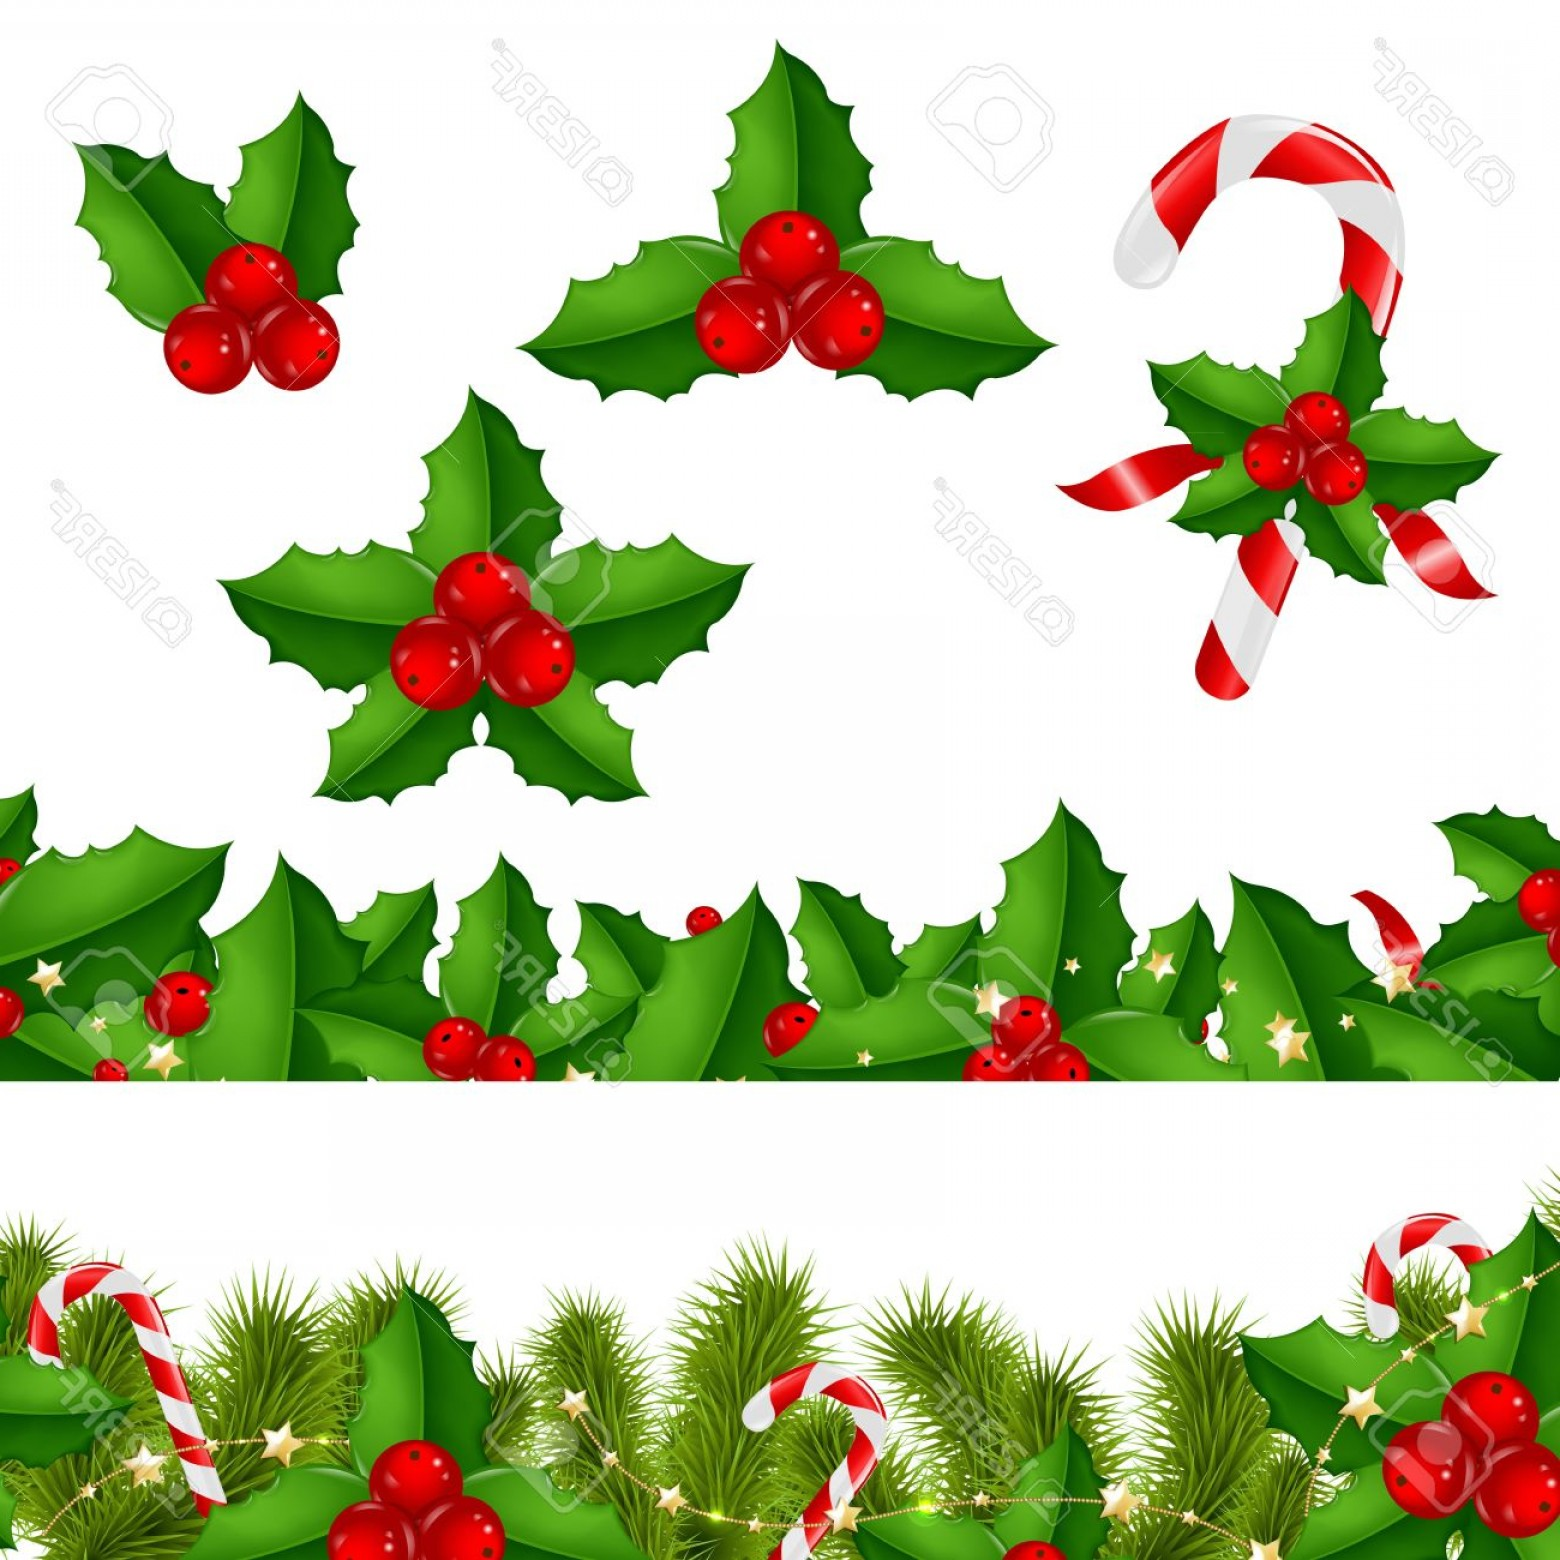 Holly Berry Vector Border: Photoborders Fir Tree With Holly Berry With Gradient Mesh Vector Illustration